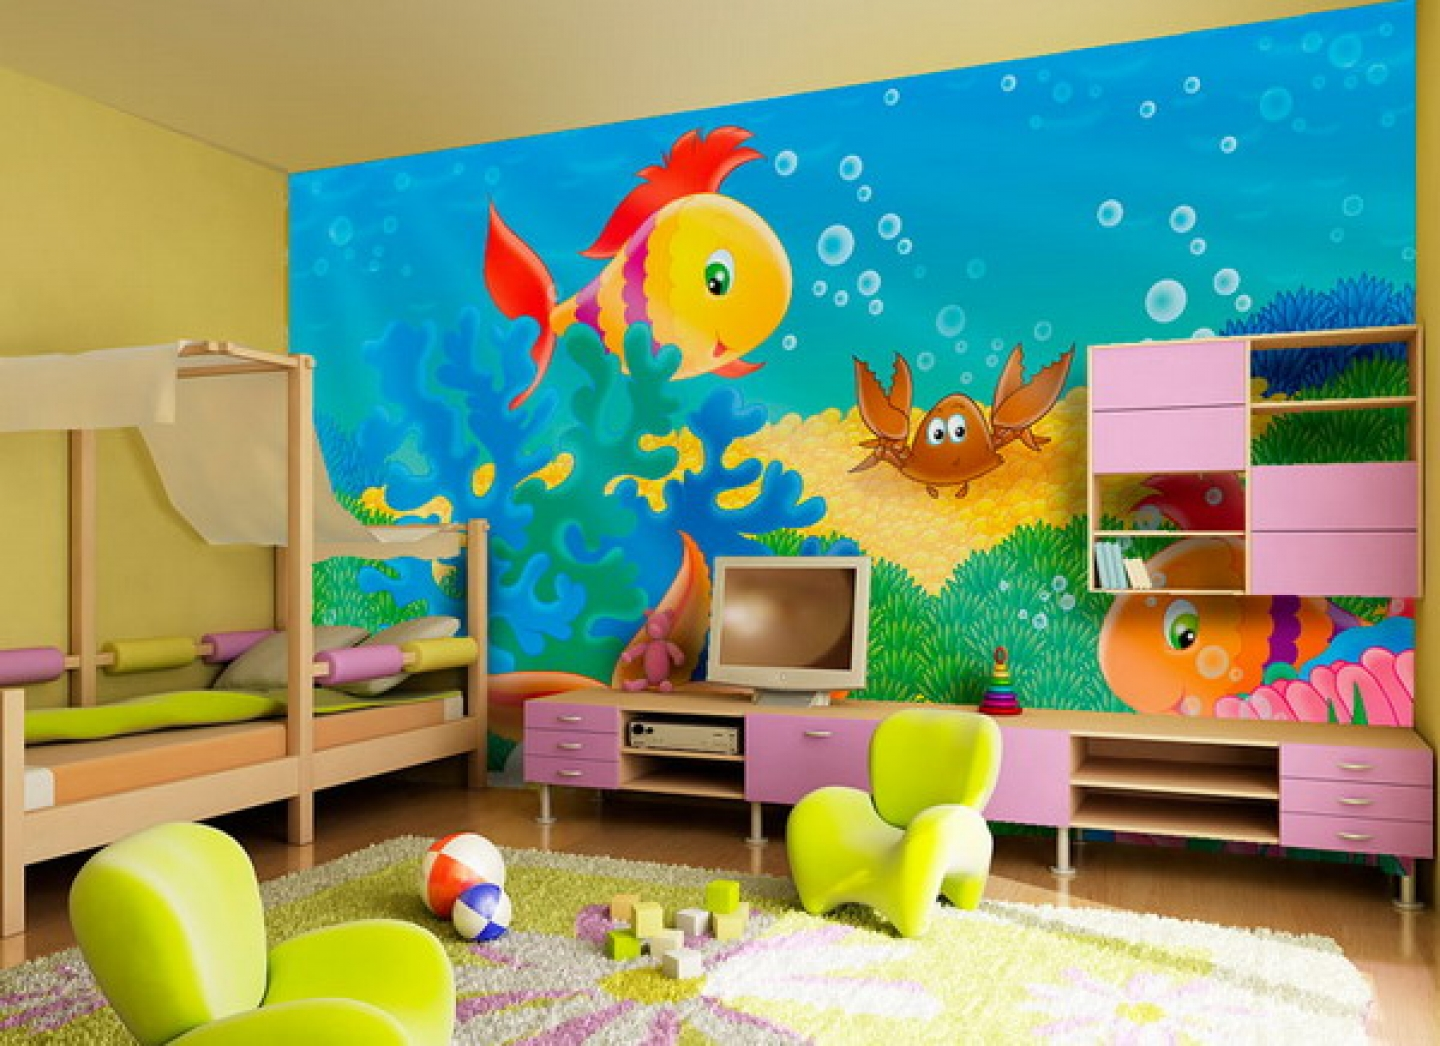 Under Water Theme Loft Bed For Your Children (View 9 of 10)